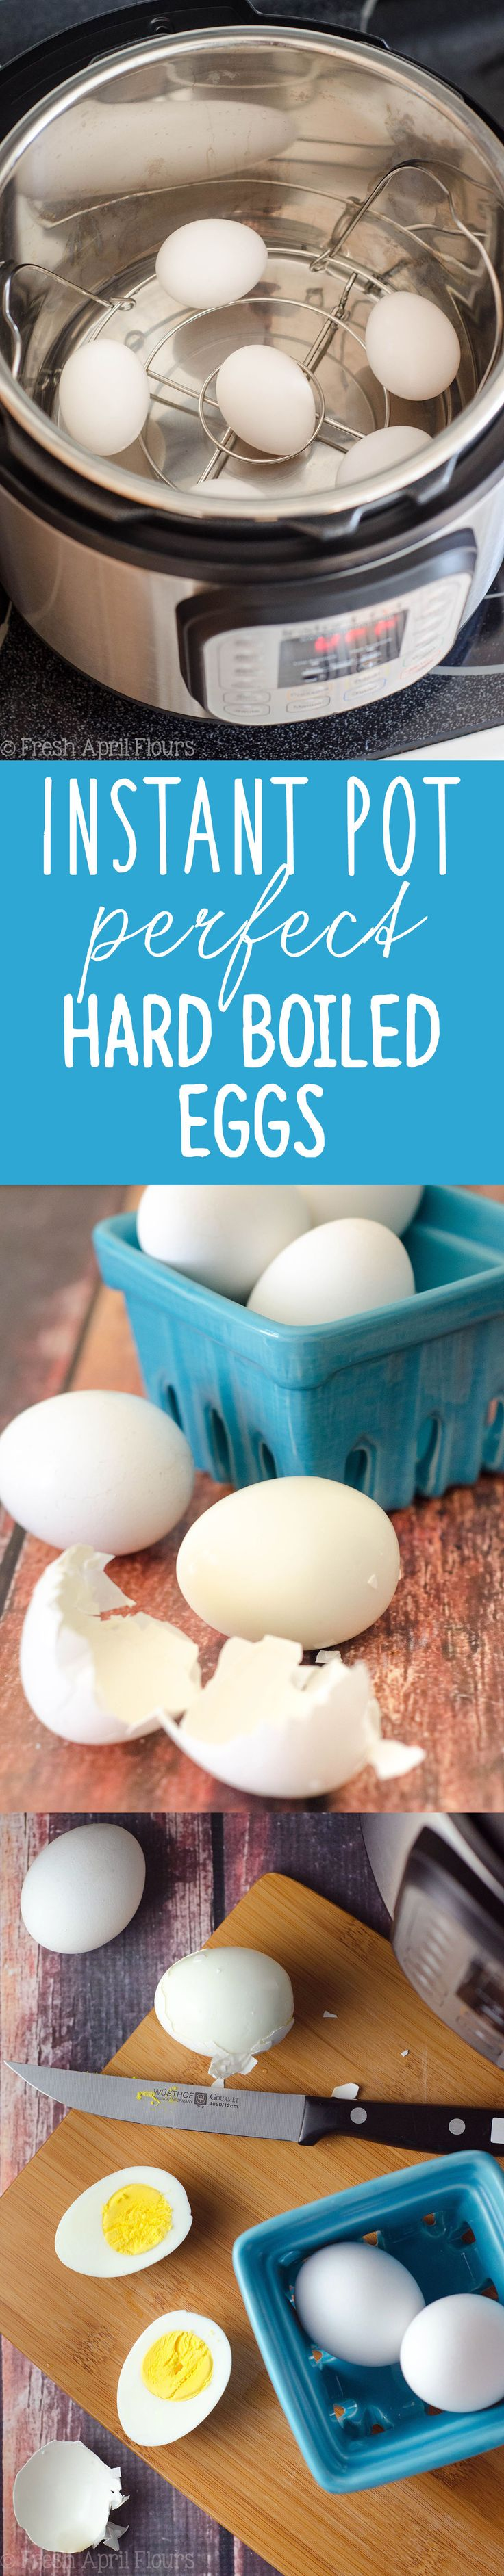 Instant Pot Perfect Hard Boiled Eggs: The 7-7-7 rule gets hard cooked eggs that are easy to peel and the perfect texture every time! via @frshaprilflours